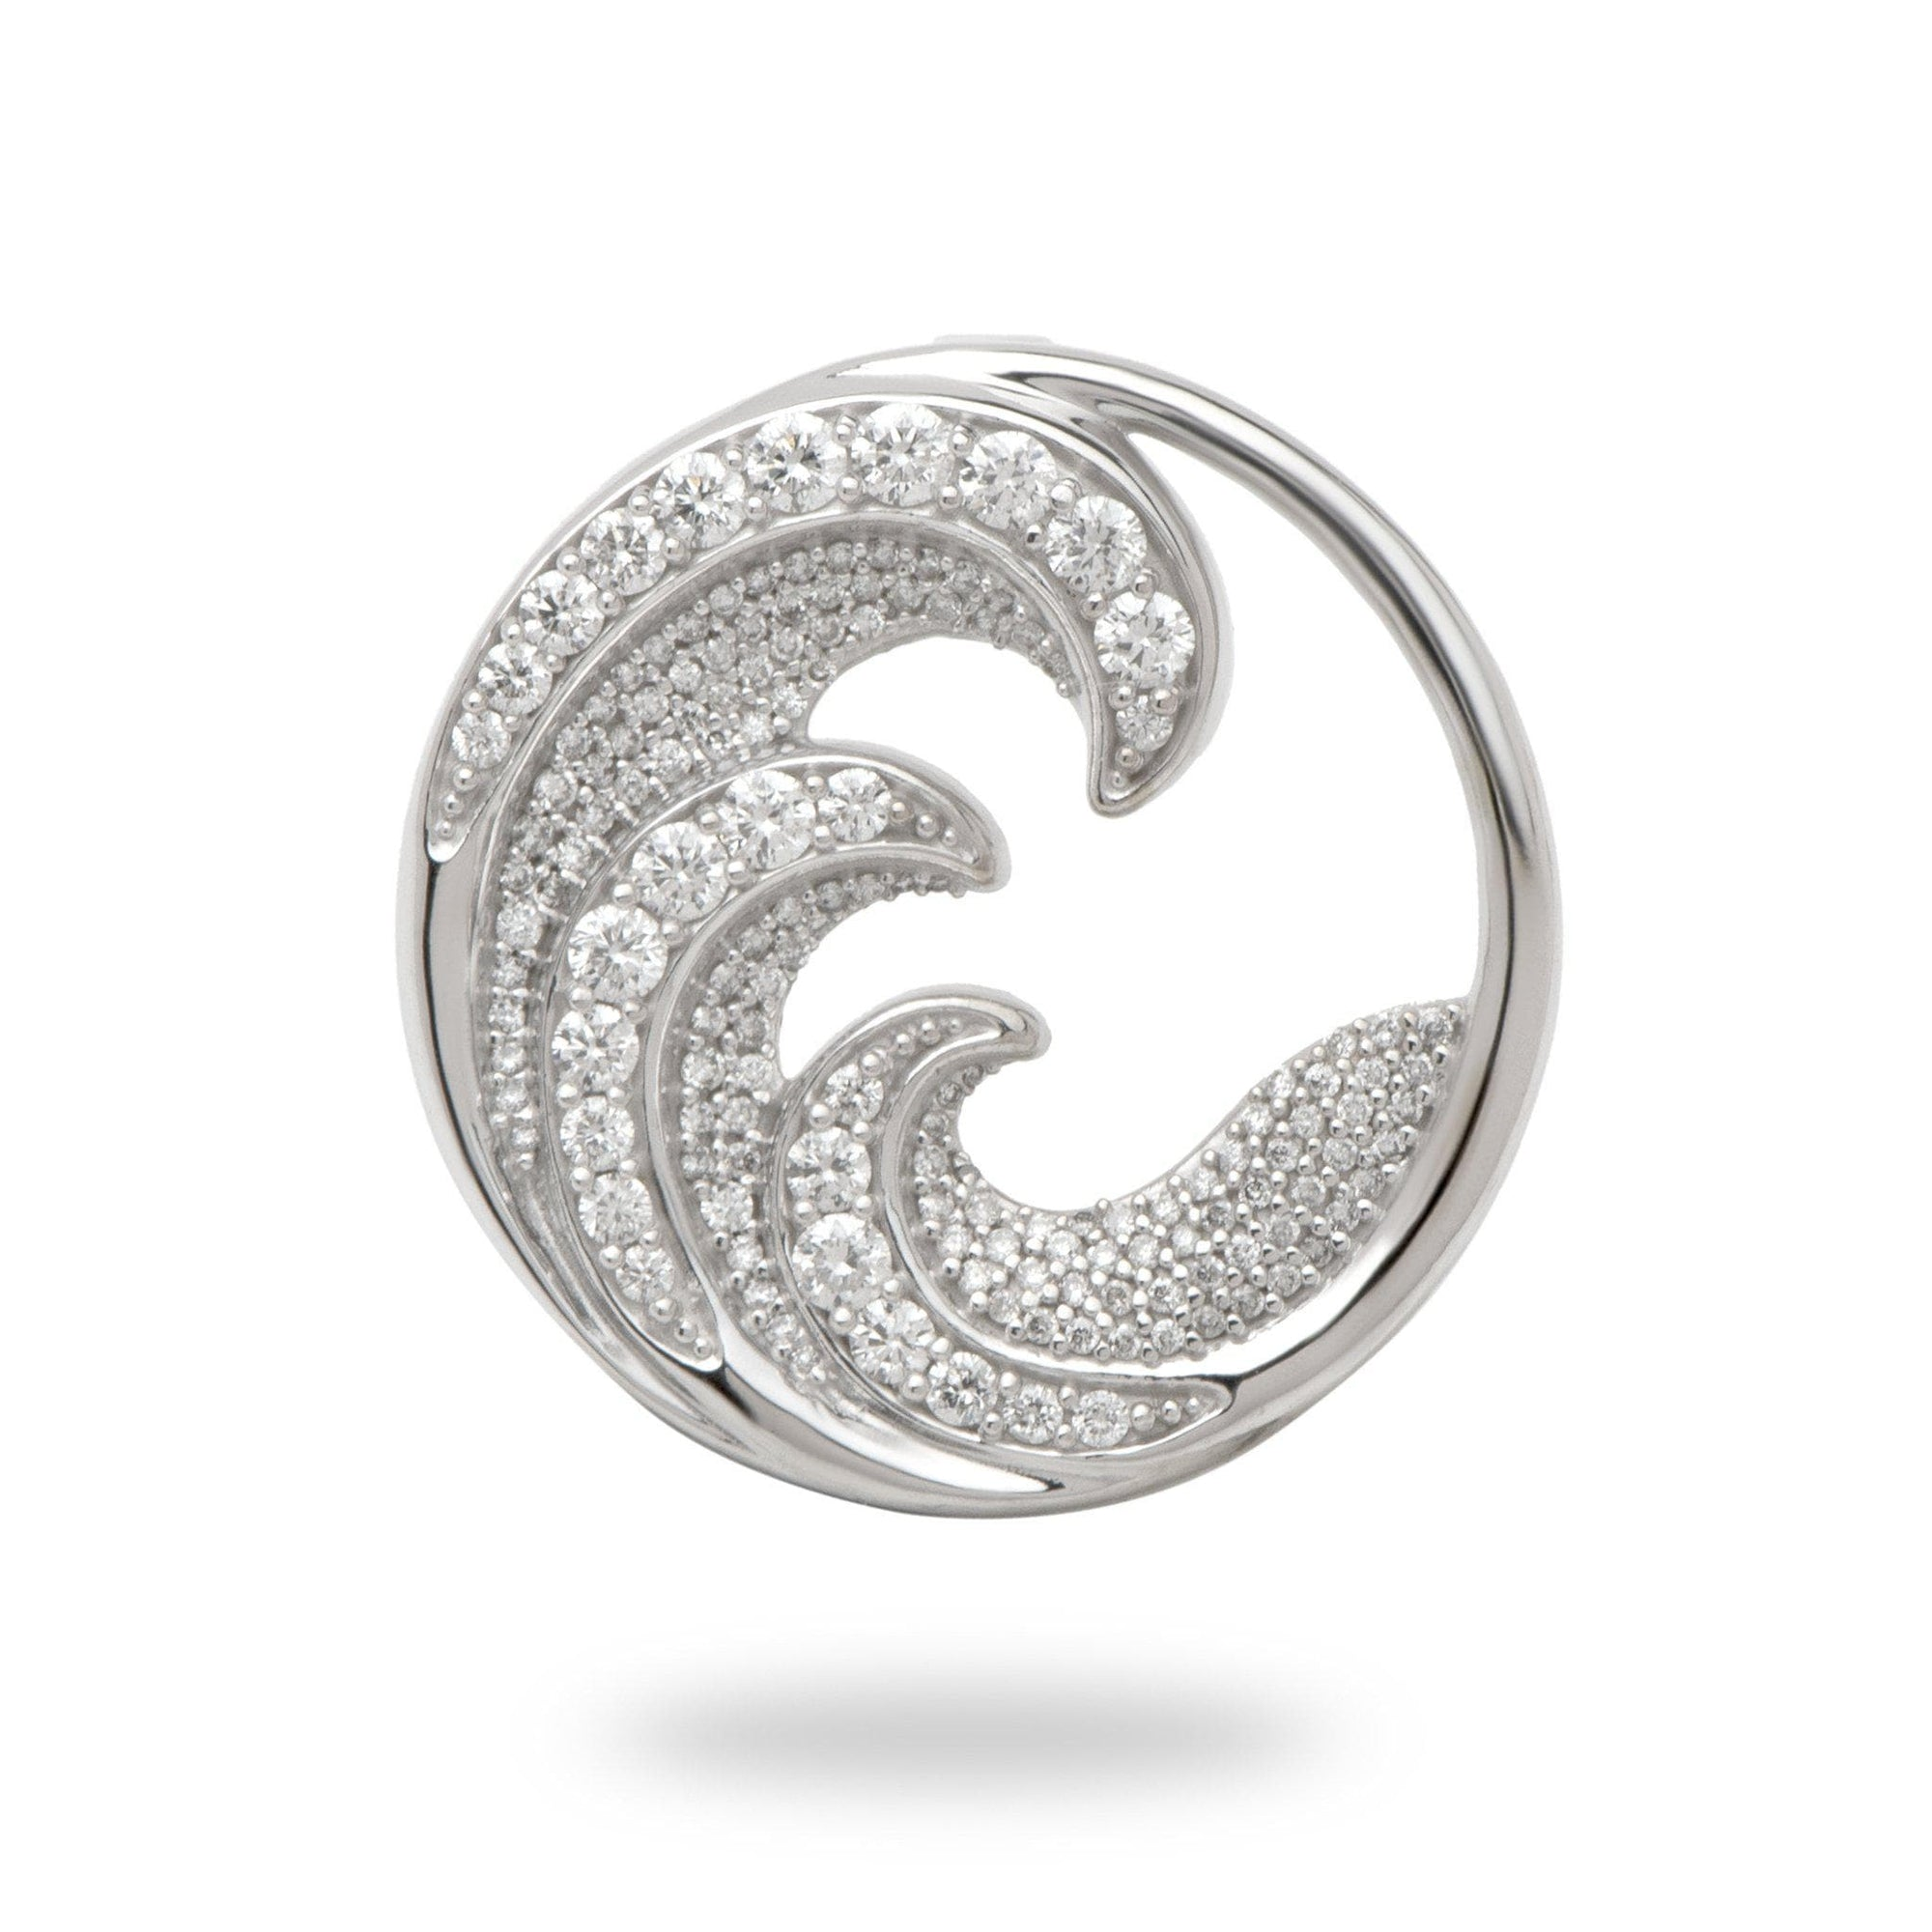 Nalu (Wave) Pendant in 14K White Gold with Diamonds-011-01650